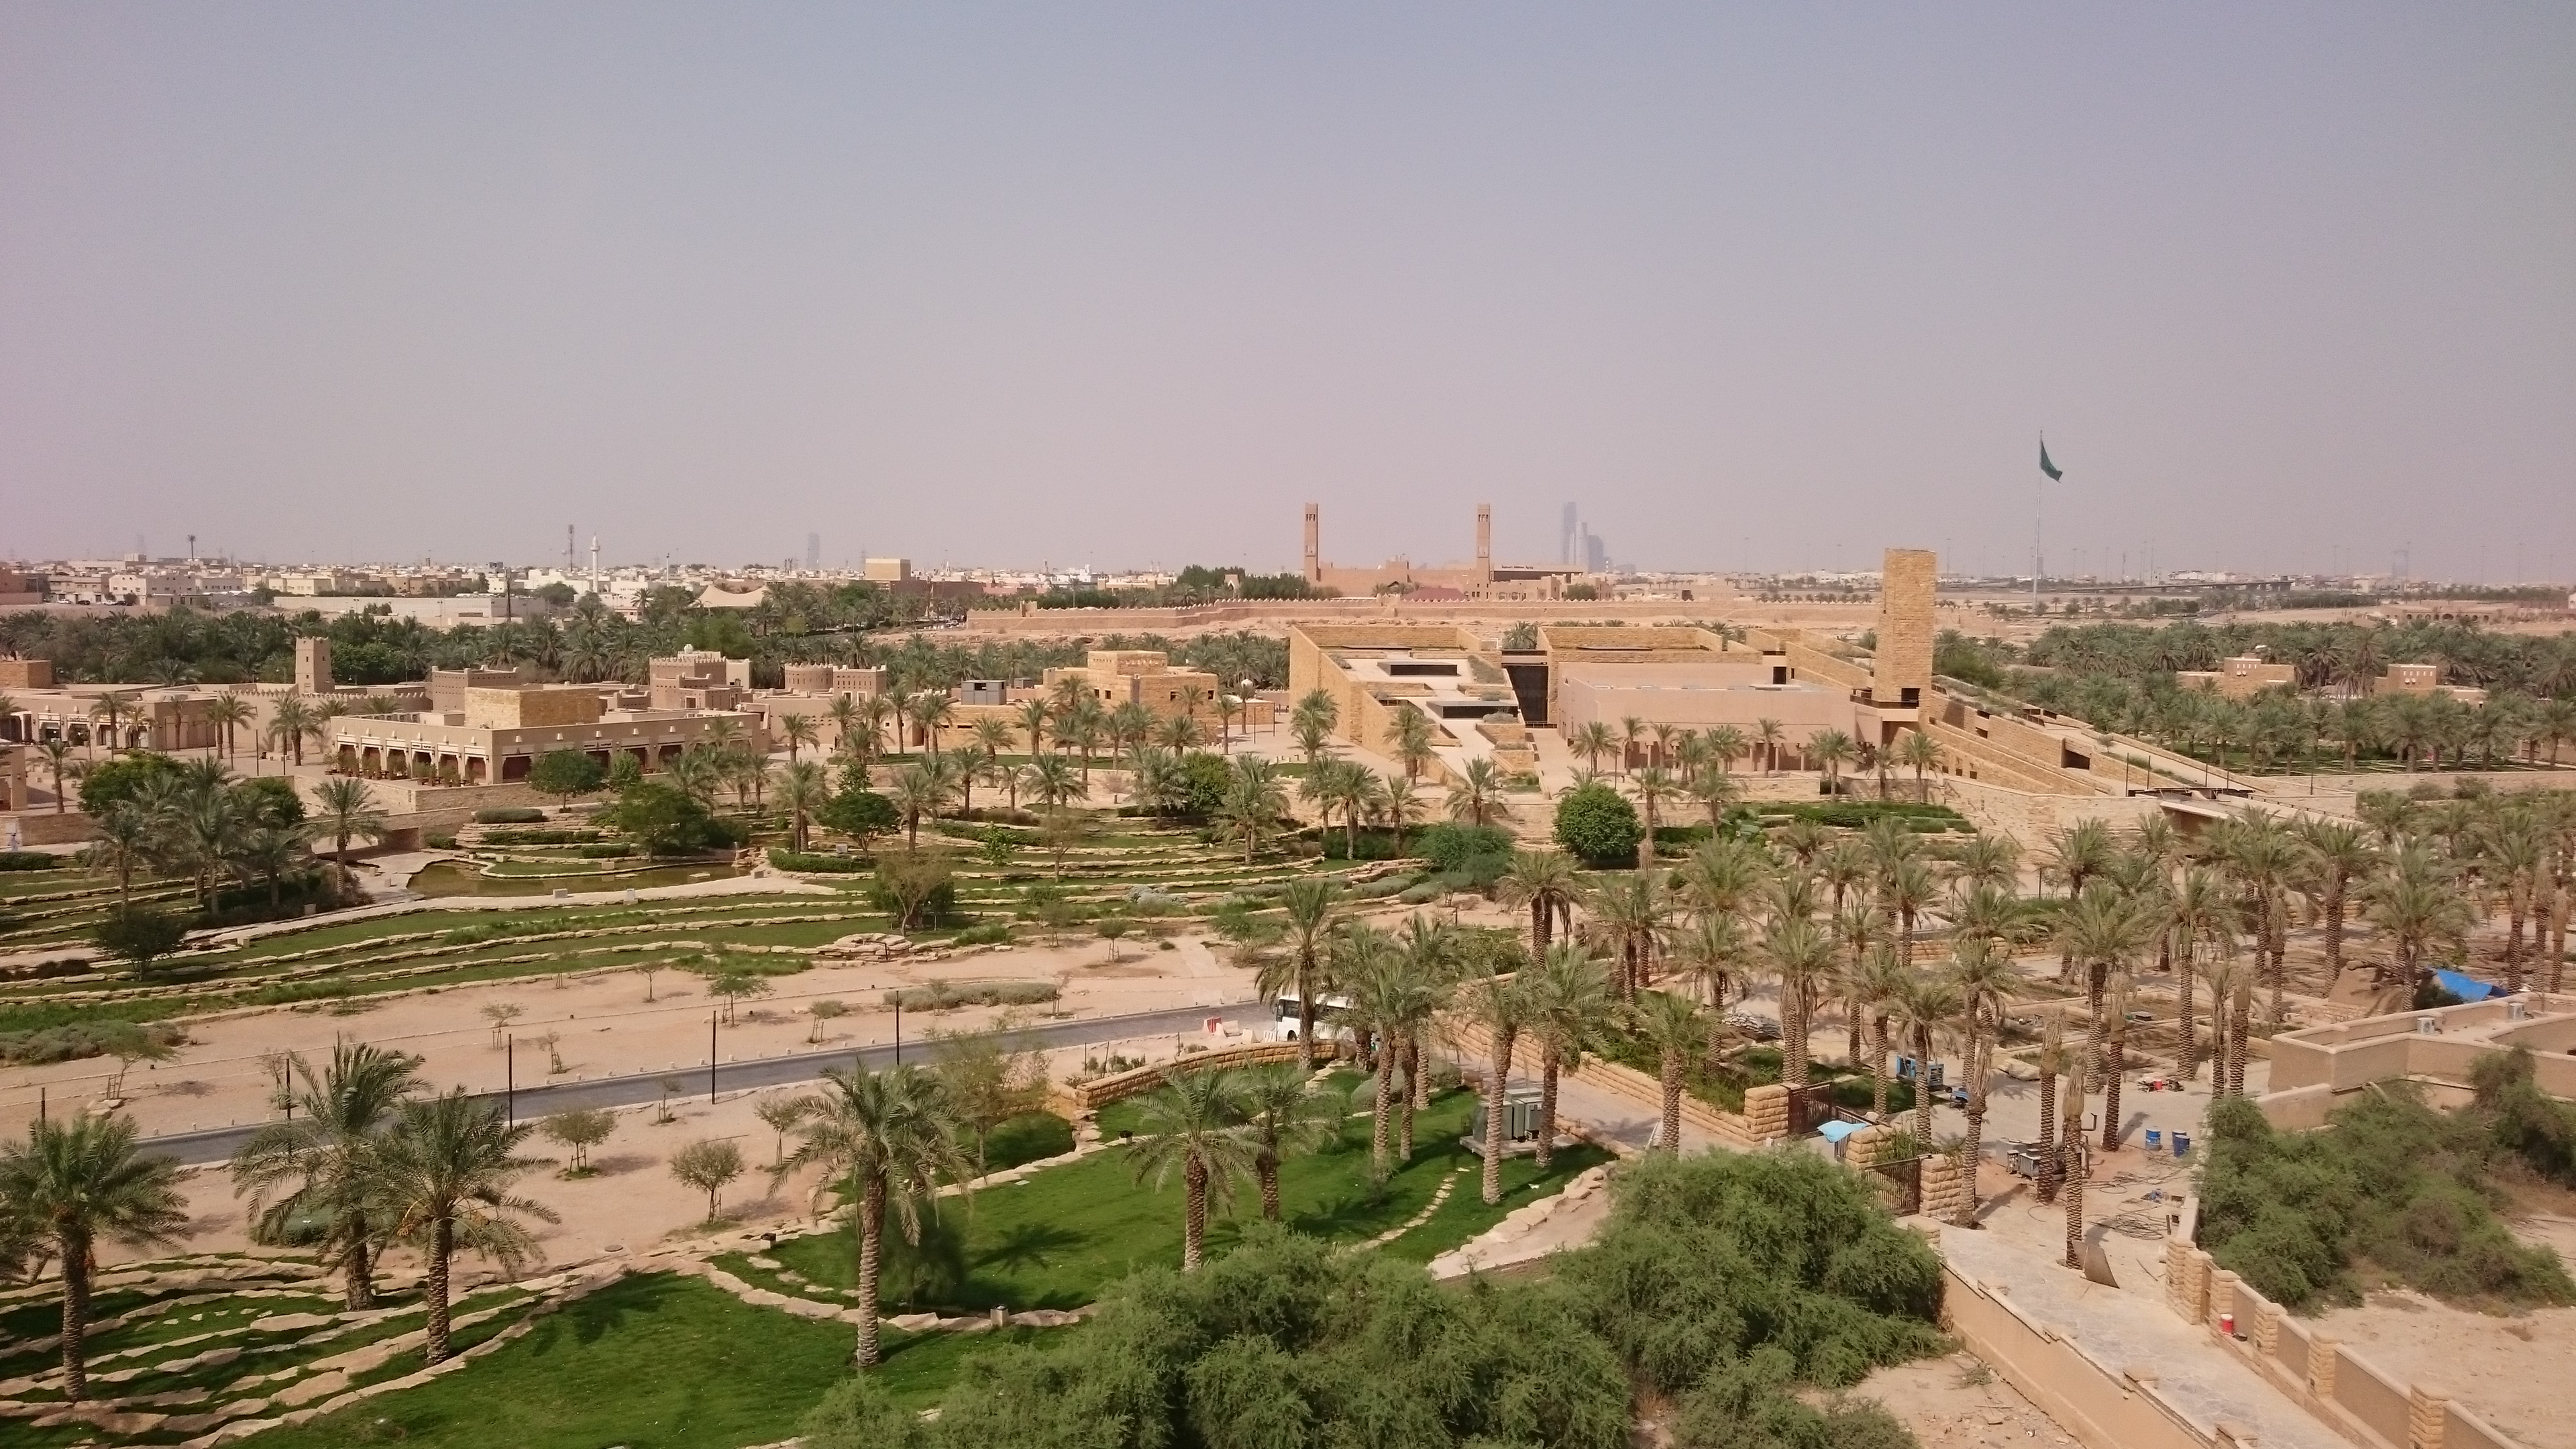 The modern side of Historical Addiriyah, showing the Islamic centre, the terraces, restaurants and shopping area